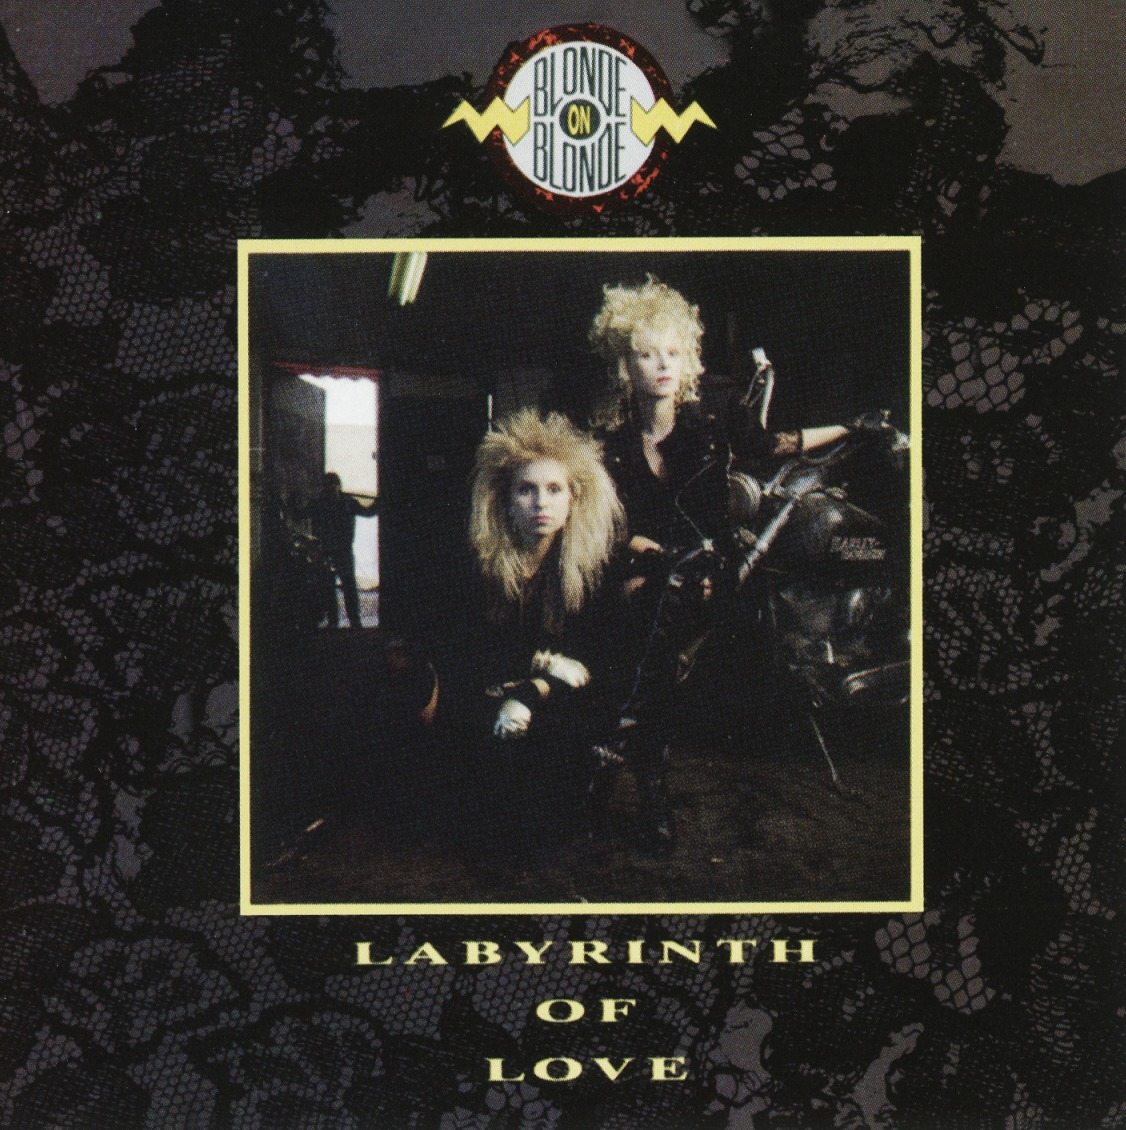 BLONDE ON BLONDE (Norway) / Labyrinth Of Love + 1